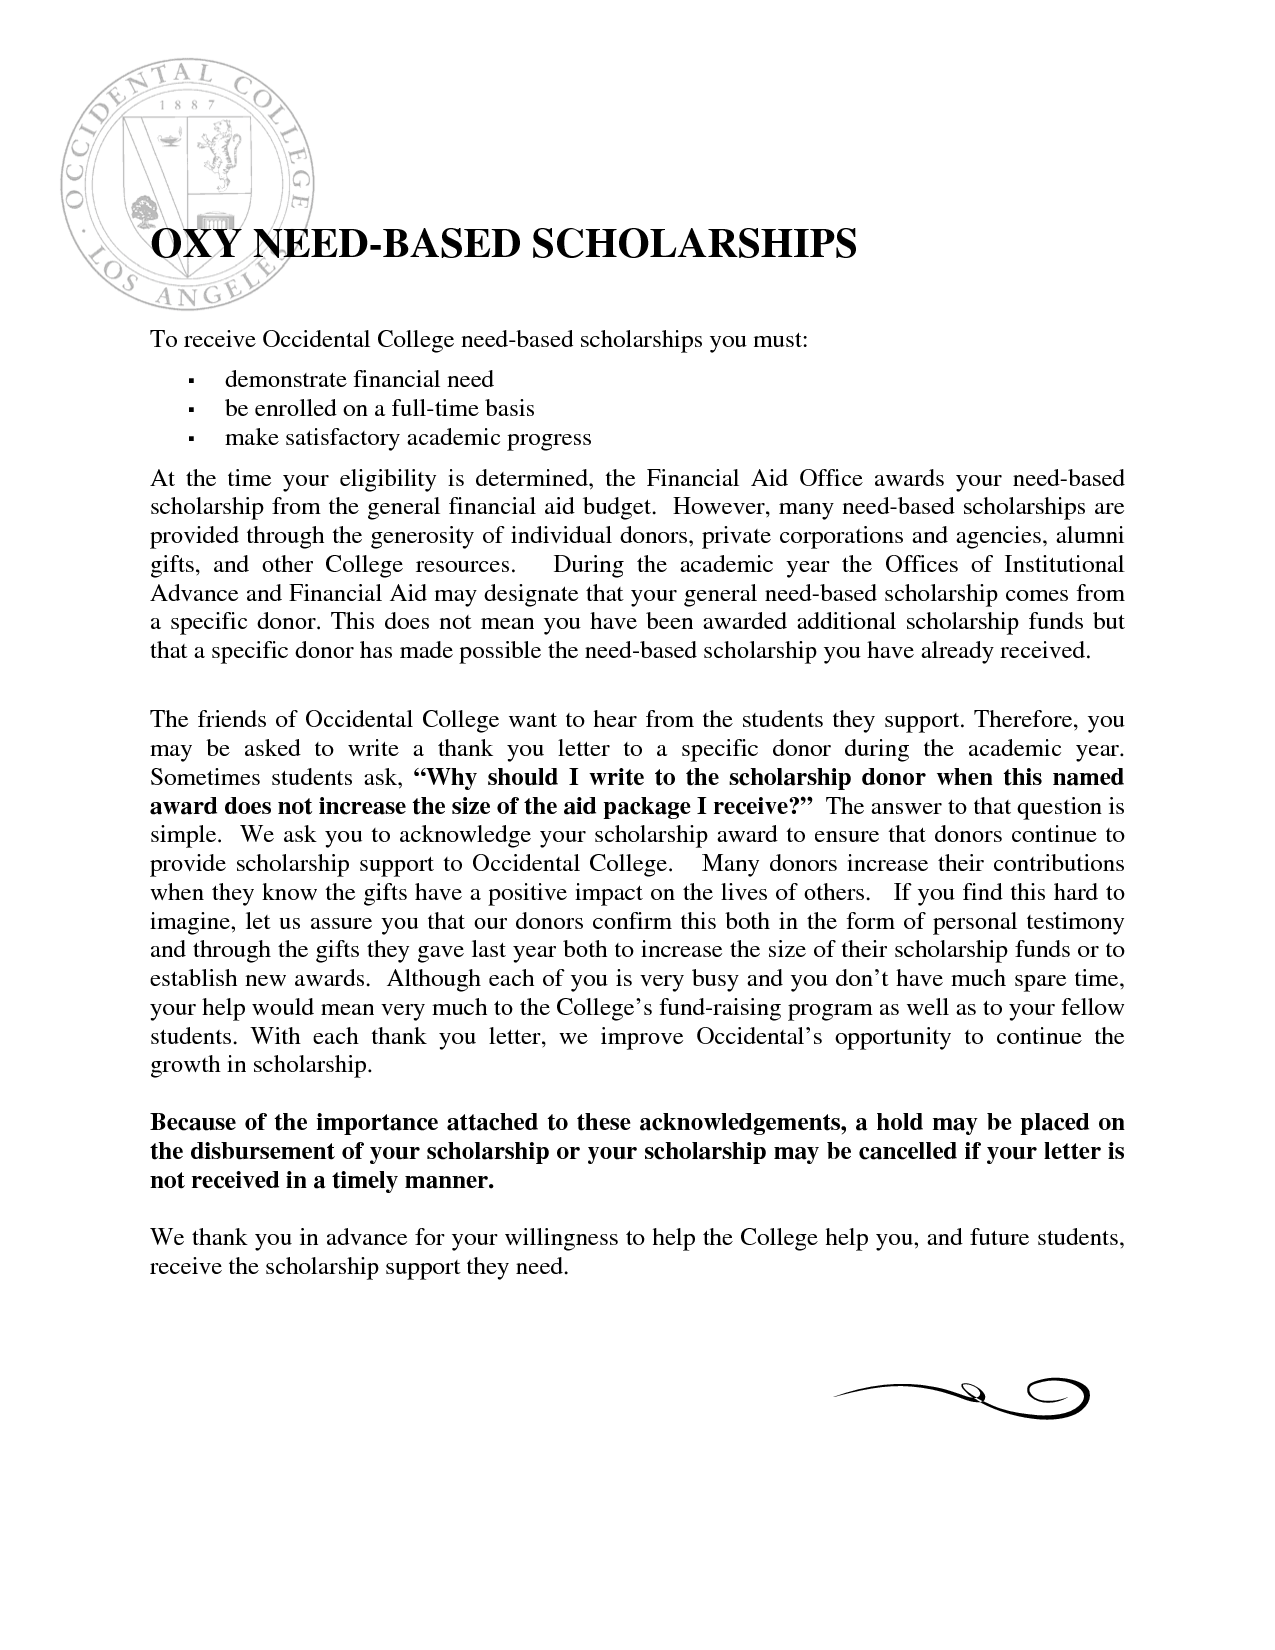 003 Cover Letter Scholarships That Require Essays Resume Daily Colleges L Essay Dreaded Canadian Don't 2019 Need Full